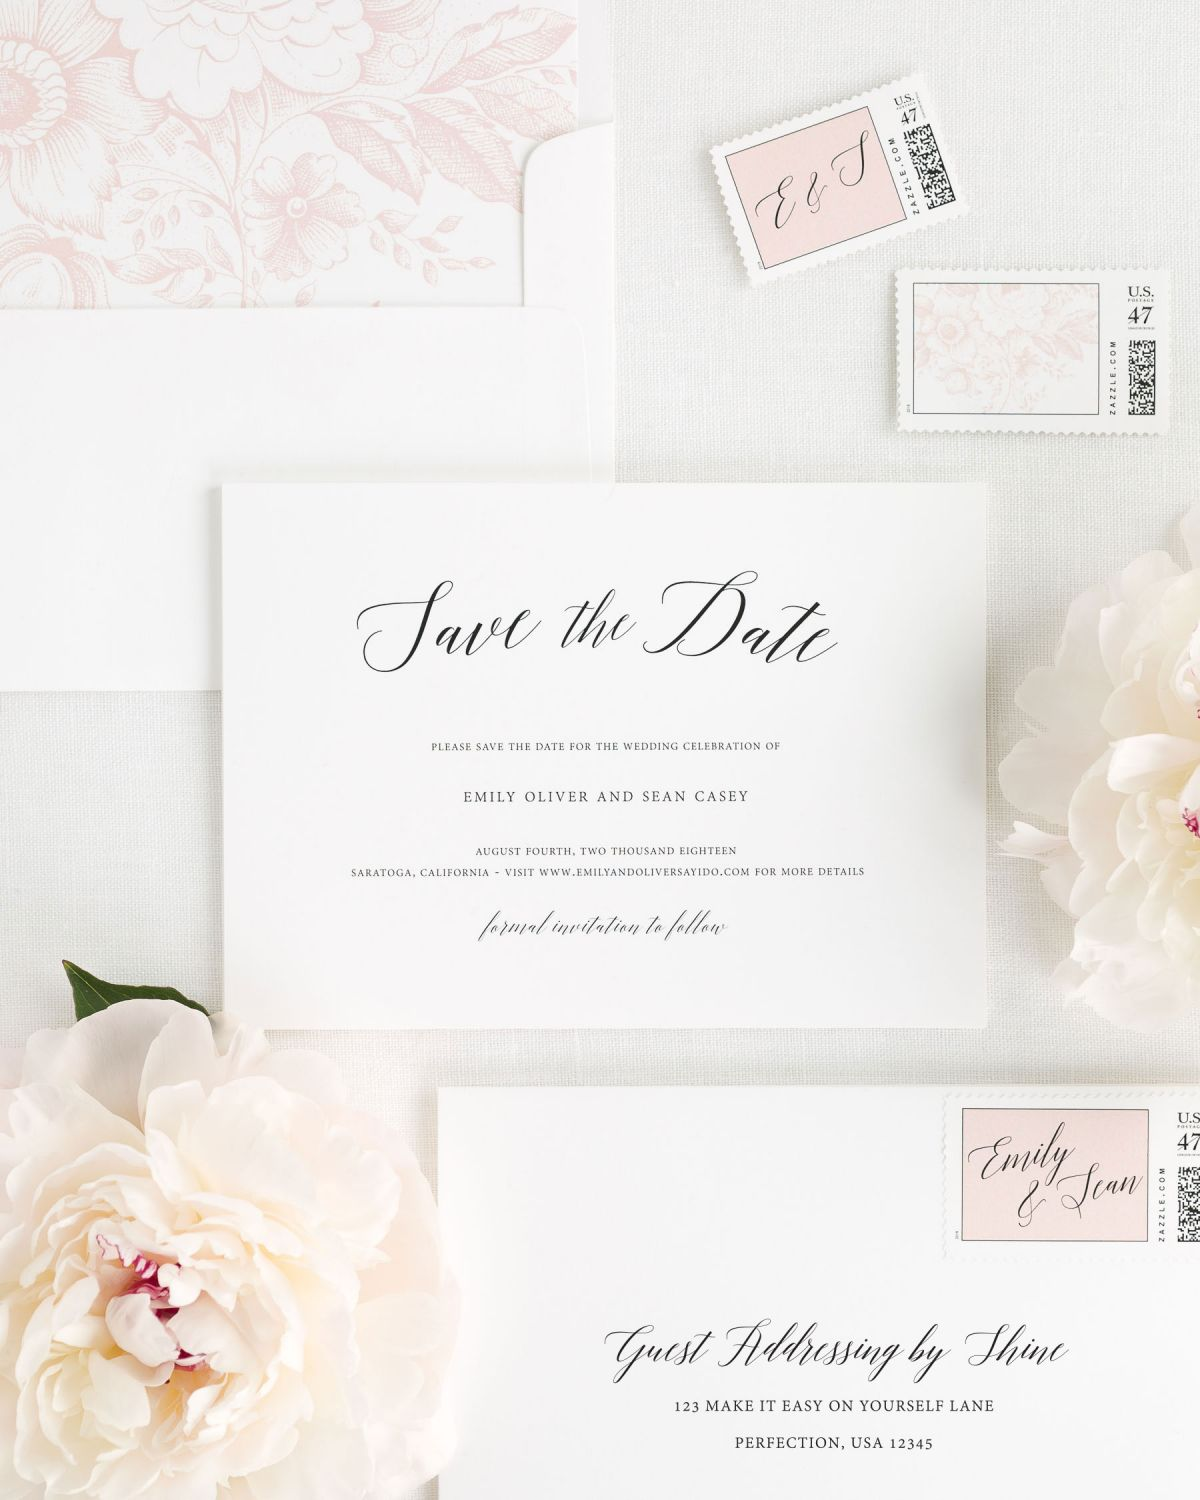 Save the Date with Blush Envelope Liner and Custom Stamps